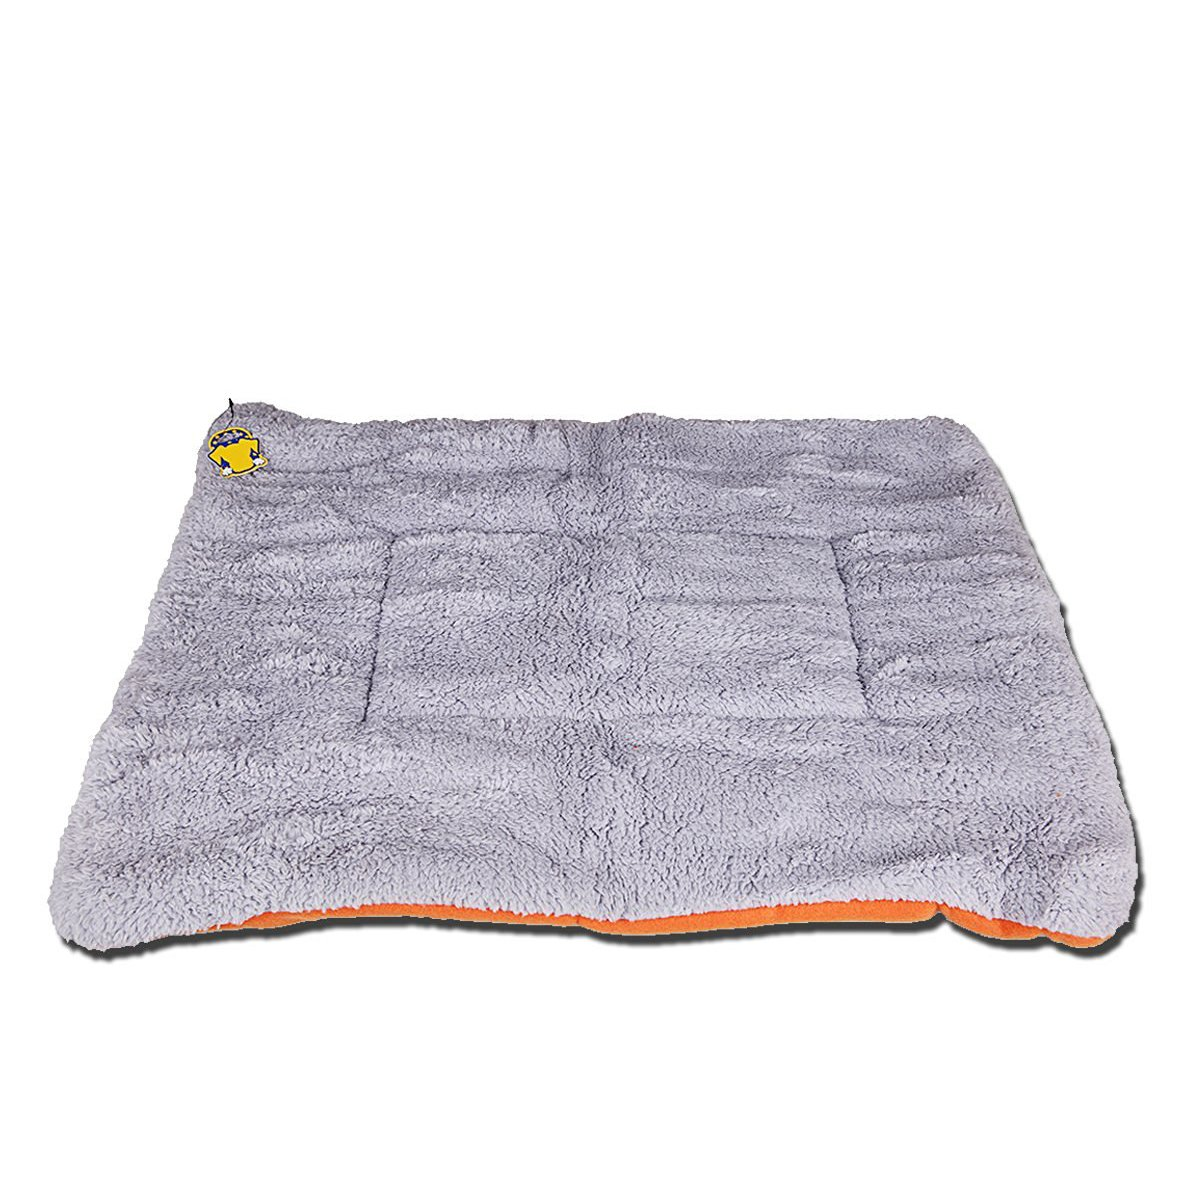 PETPAWJOY Dogs Blanket, Crate Pad Cat Bed Dog Crate Cushions Pad Washable Filling Pads Soft Furry Pet Bed Mat 33x31x1.5 inch